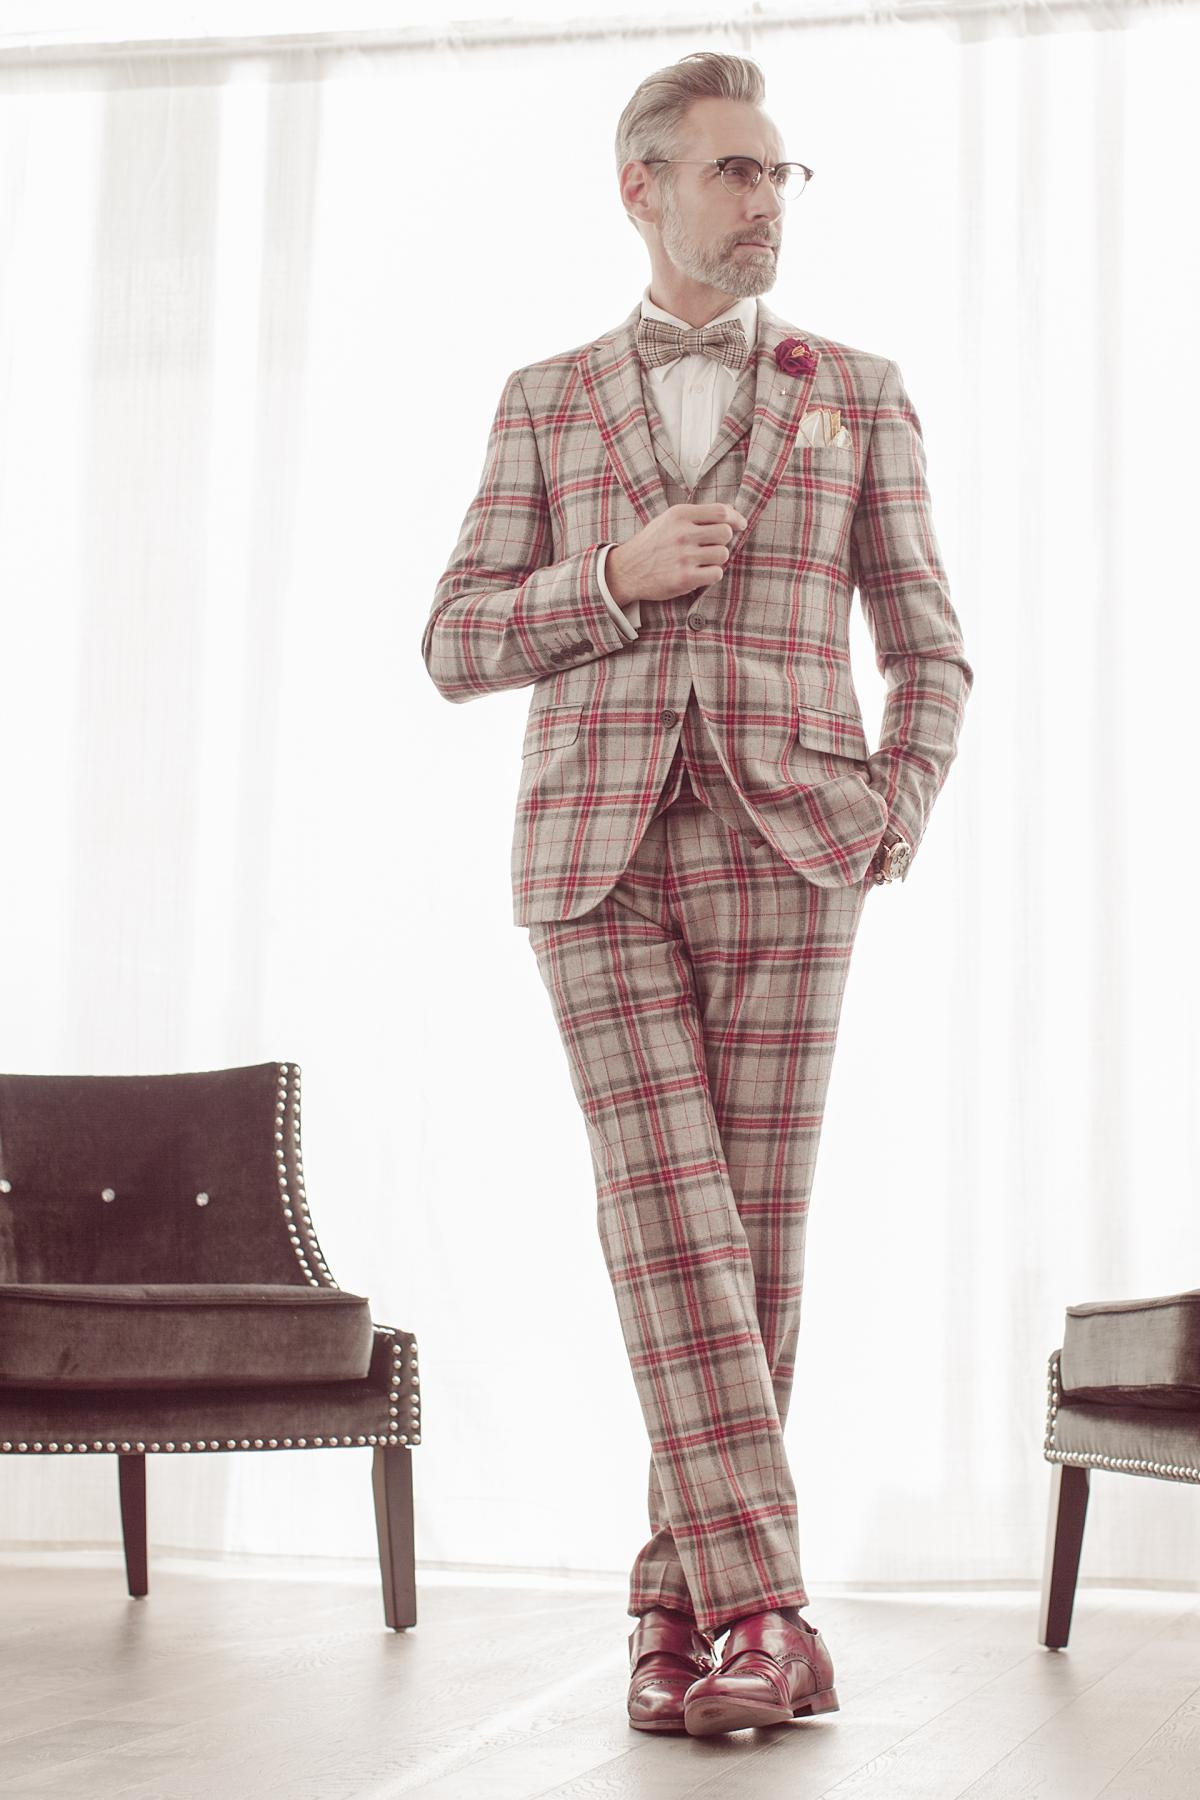 Expressive style of a man in classic suit with red squares